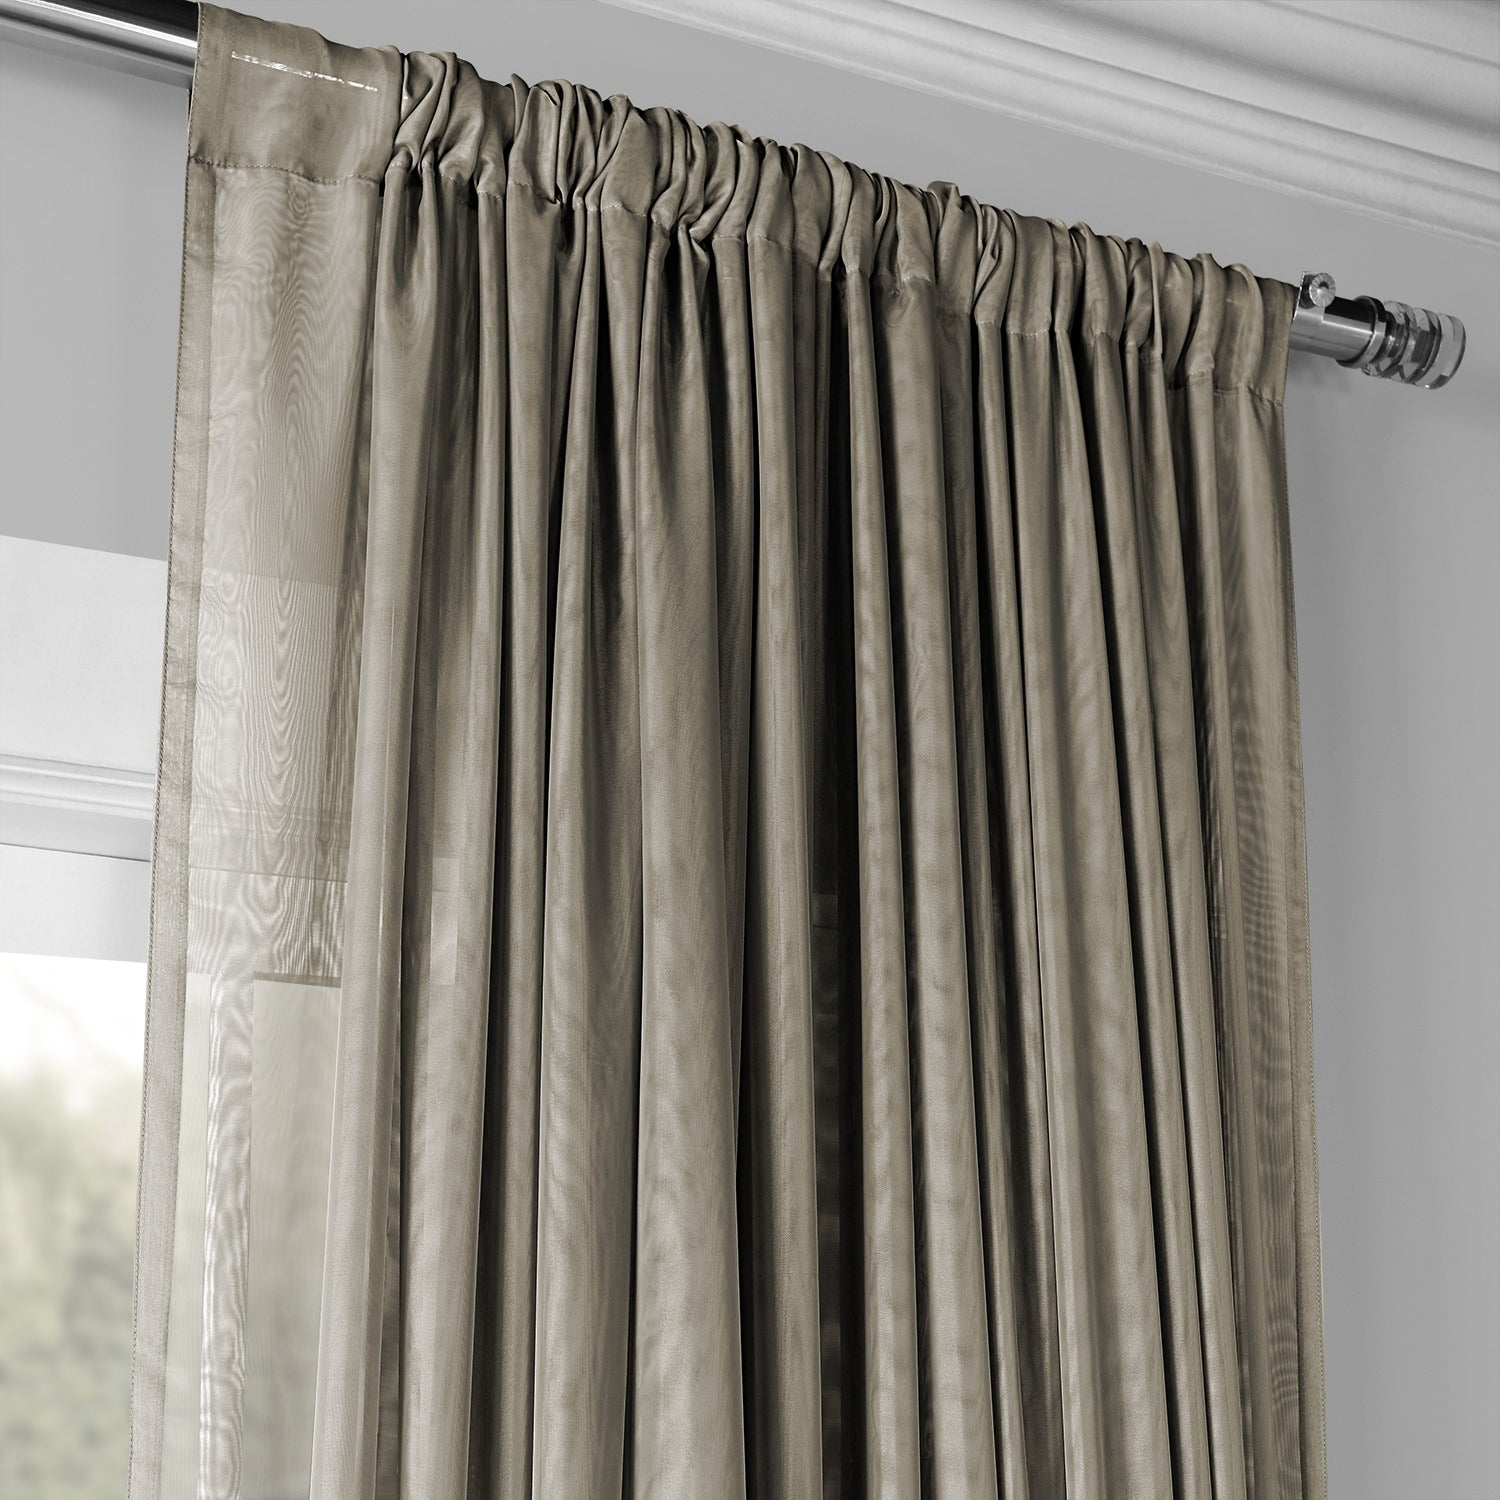 Exclusive Fabrics Signature Extrawide Double Layer Sheer Curtain Panel Intended For Signature Extrawide Double Layer Sheer Curtain Panels (View 4 of 11)